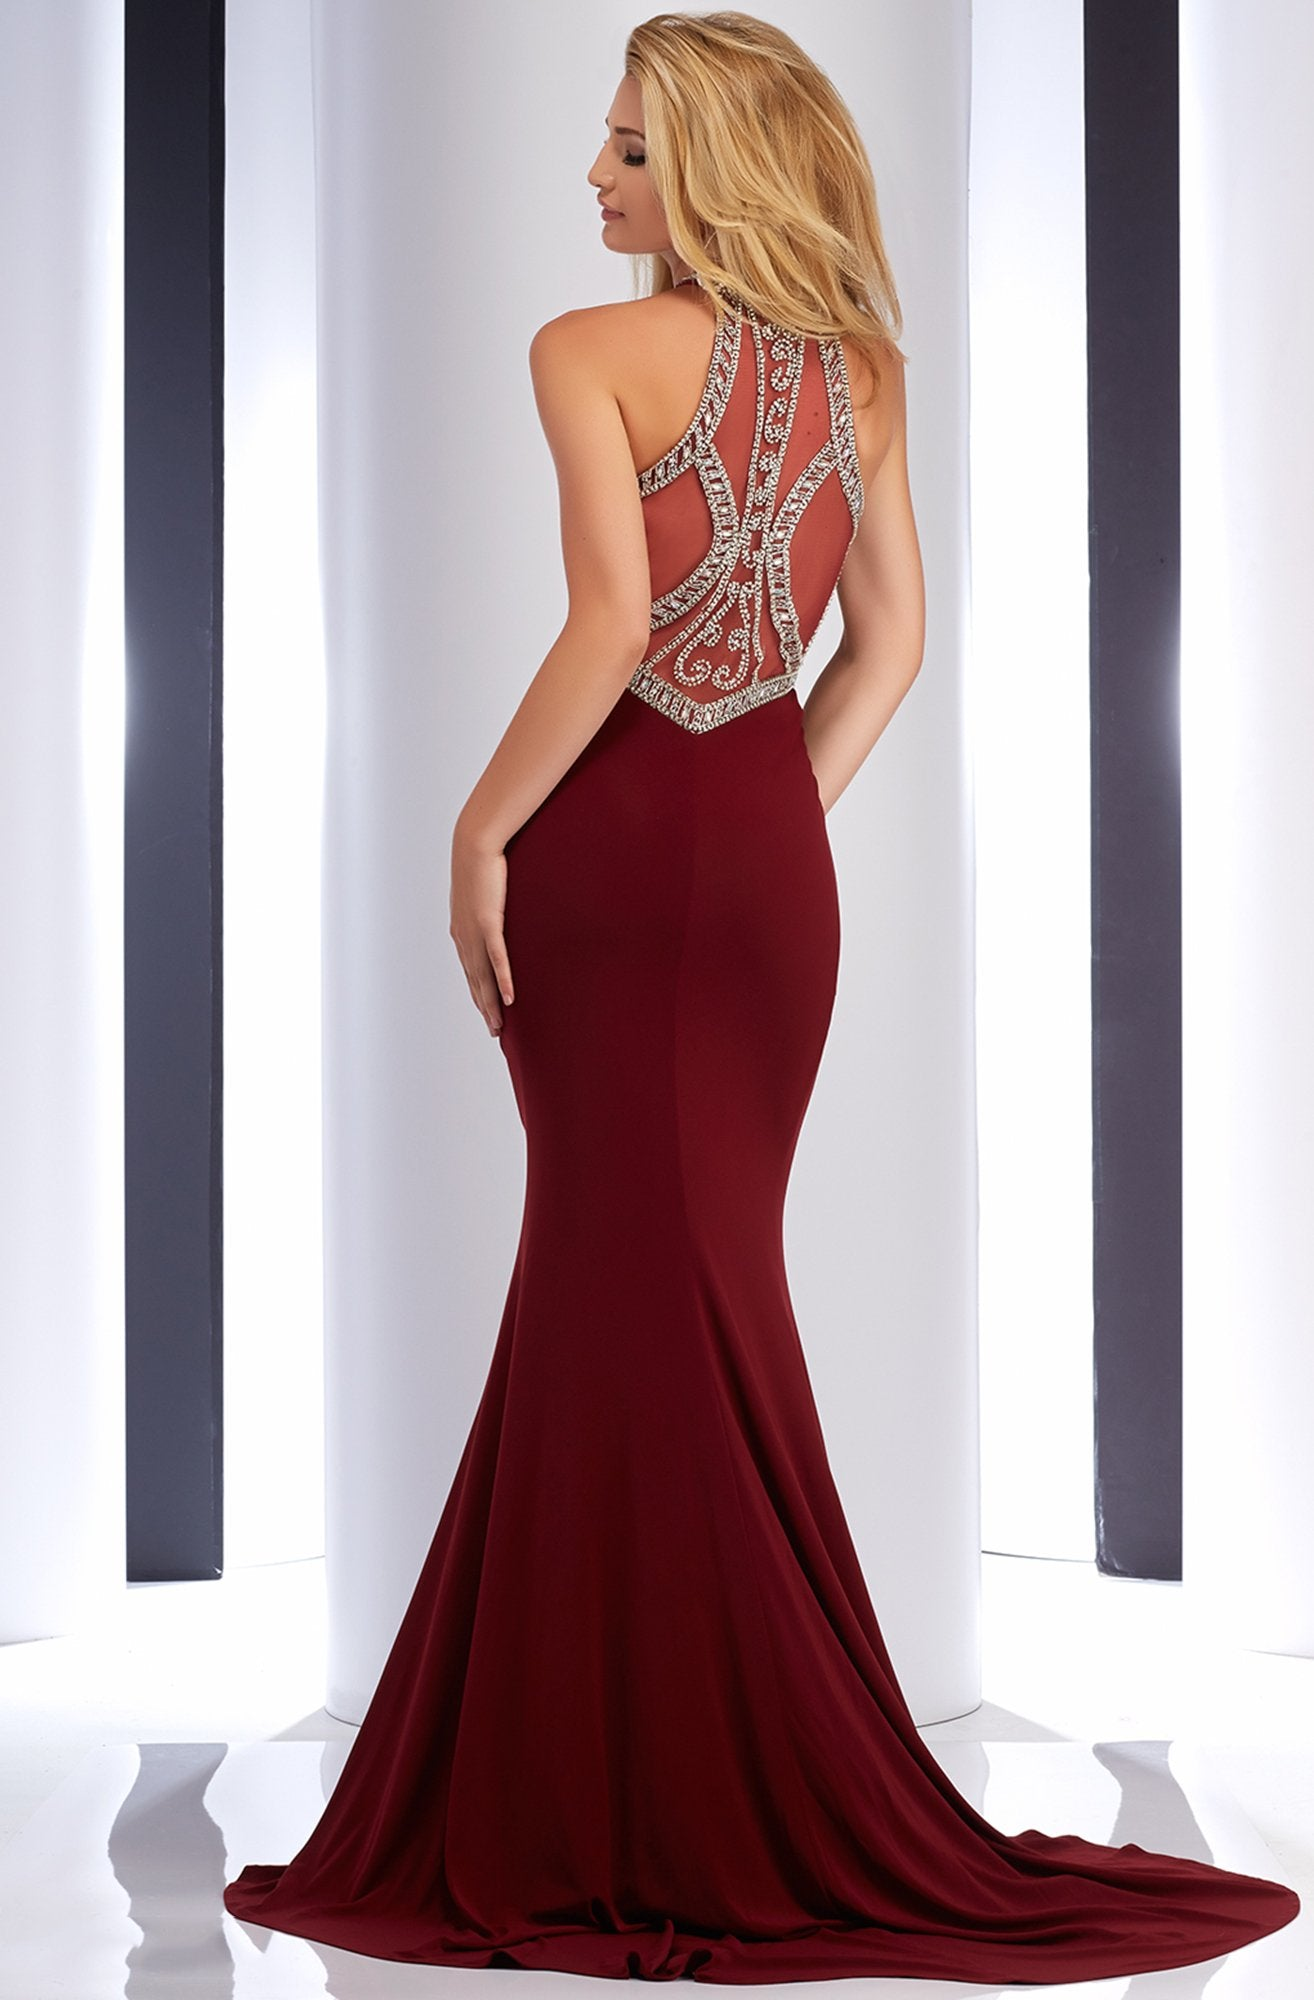 Clarisse - 2807 Crystal Festooned Halter Gown in Red